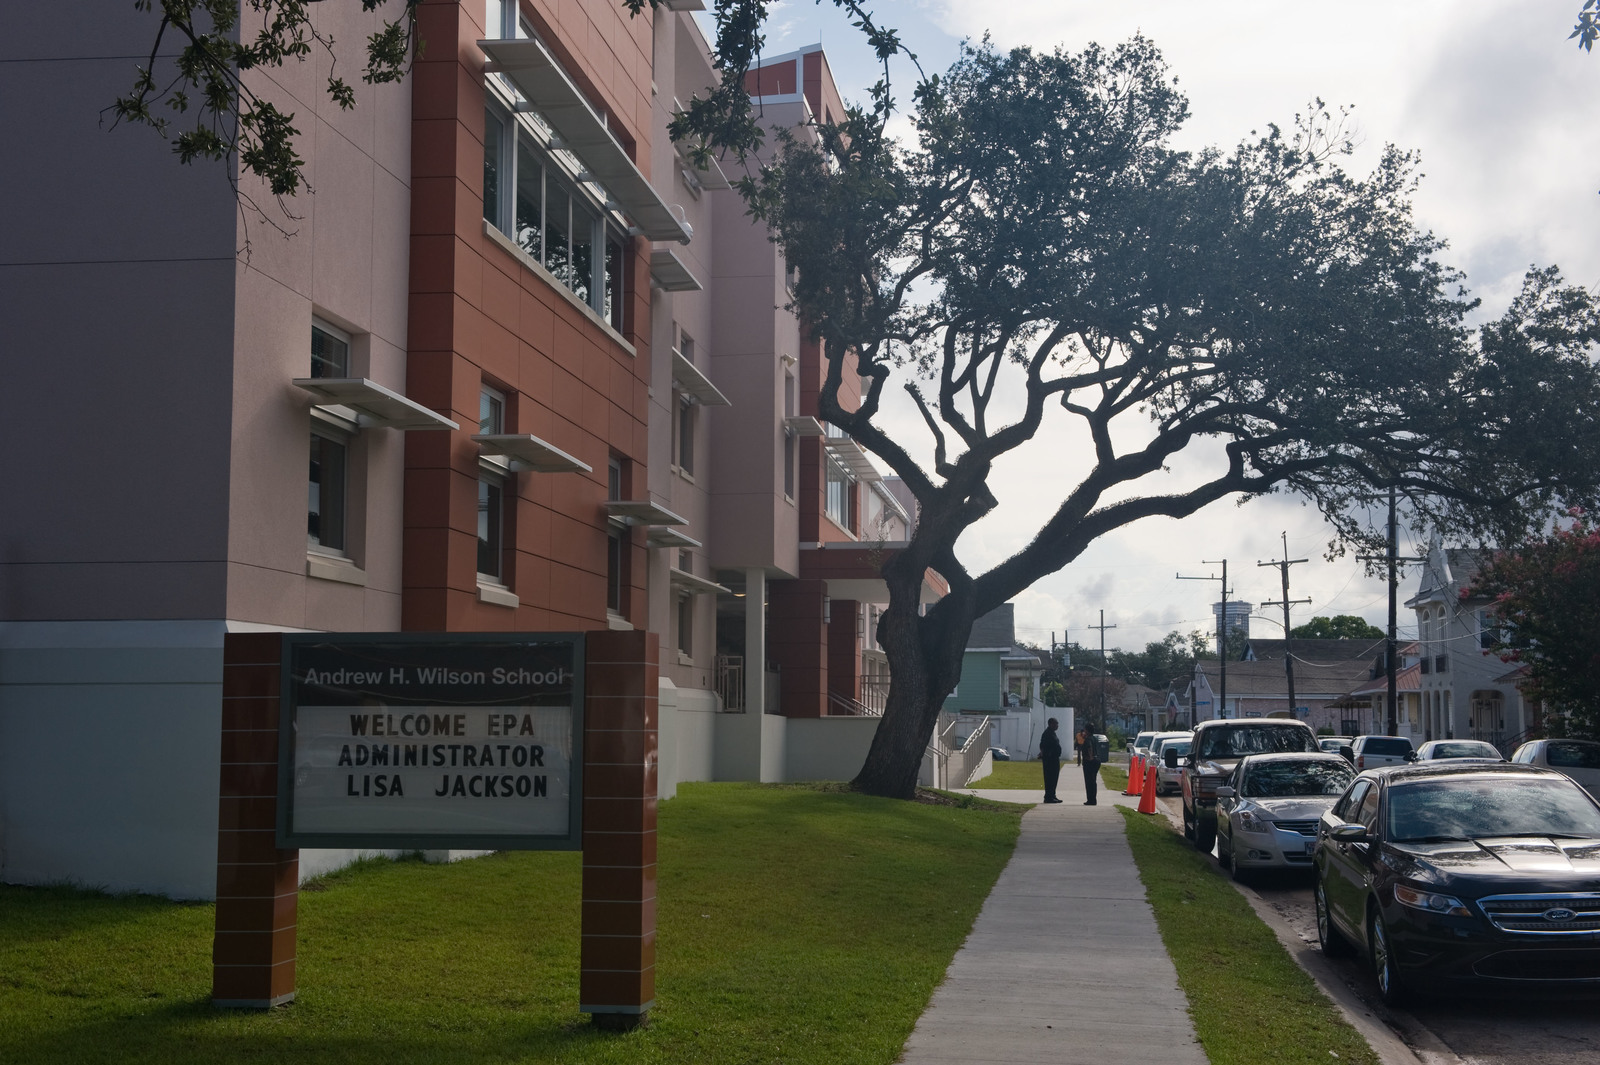 Office of the Administrator (Lisa P. Jackson) - Administrator in New Orleans ,